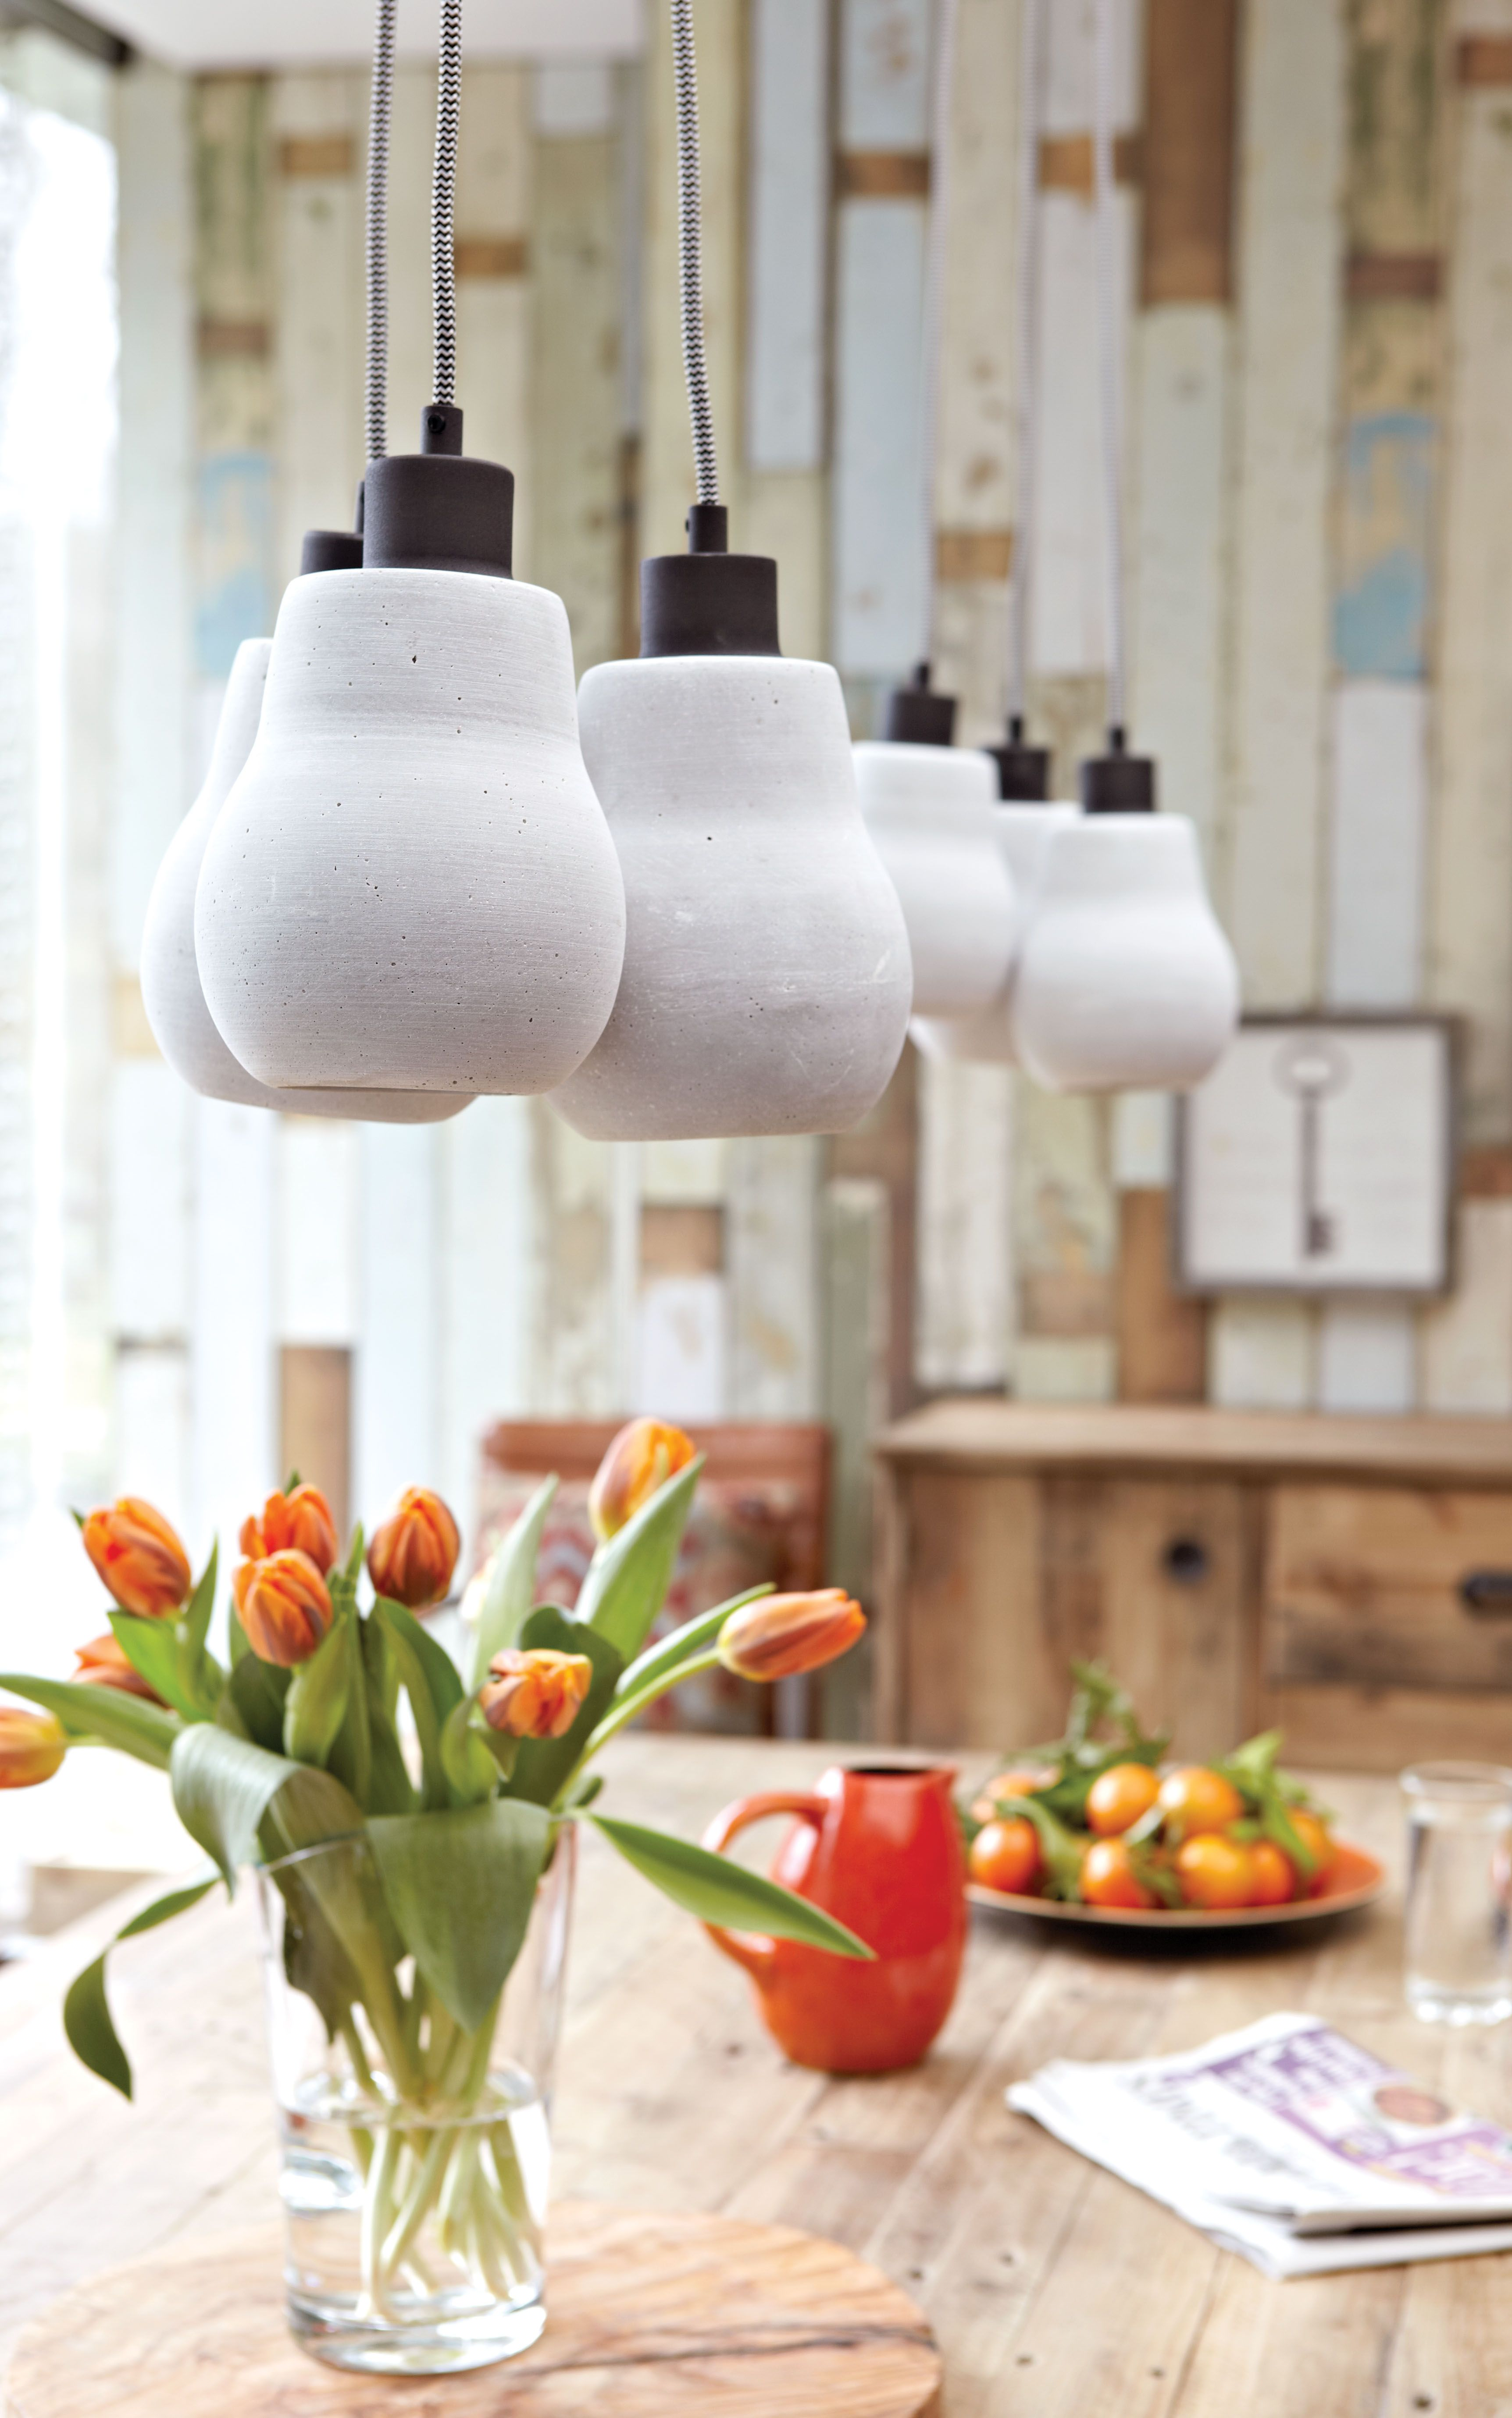 Lights To Hang Over Dining Table Incredible Statement Light Fitting Ideal For Hanging